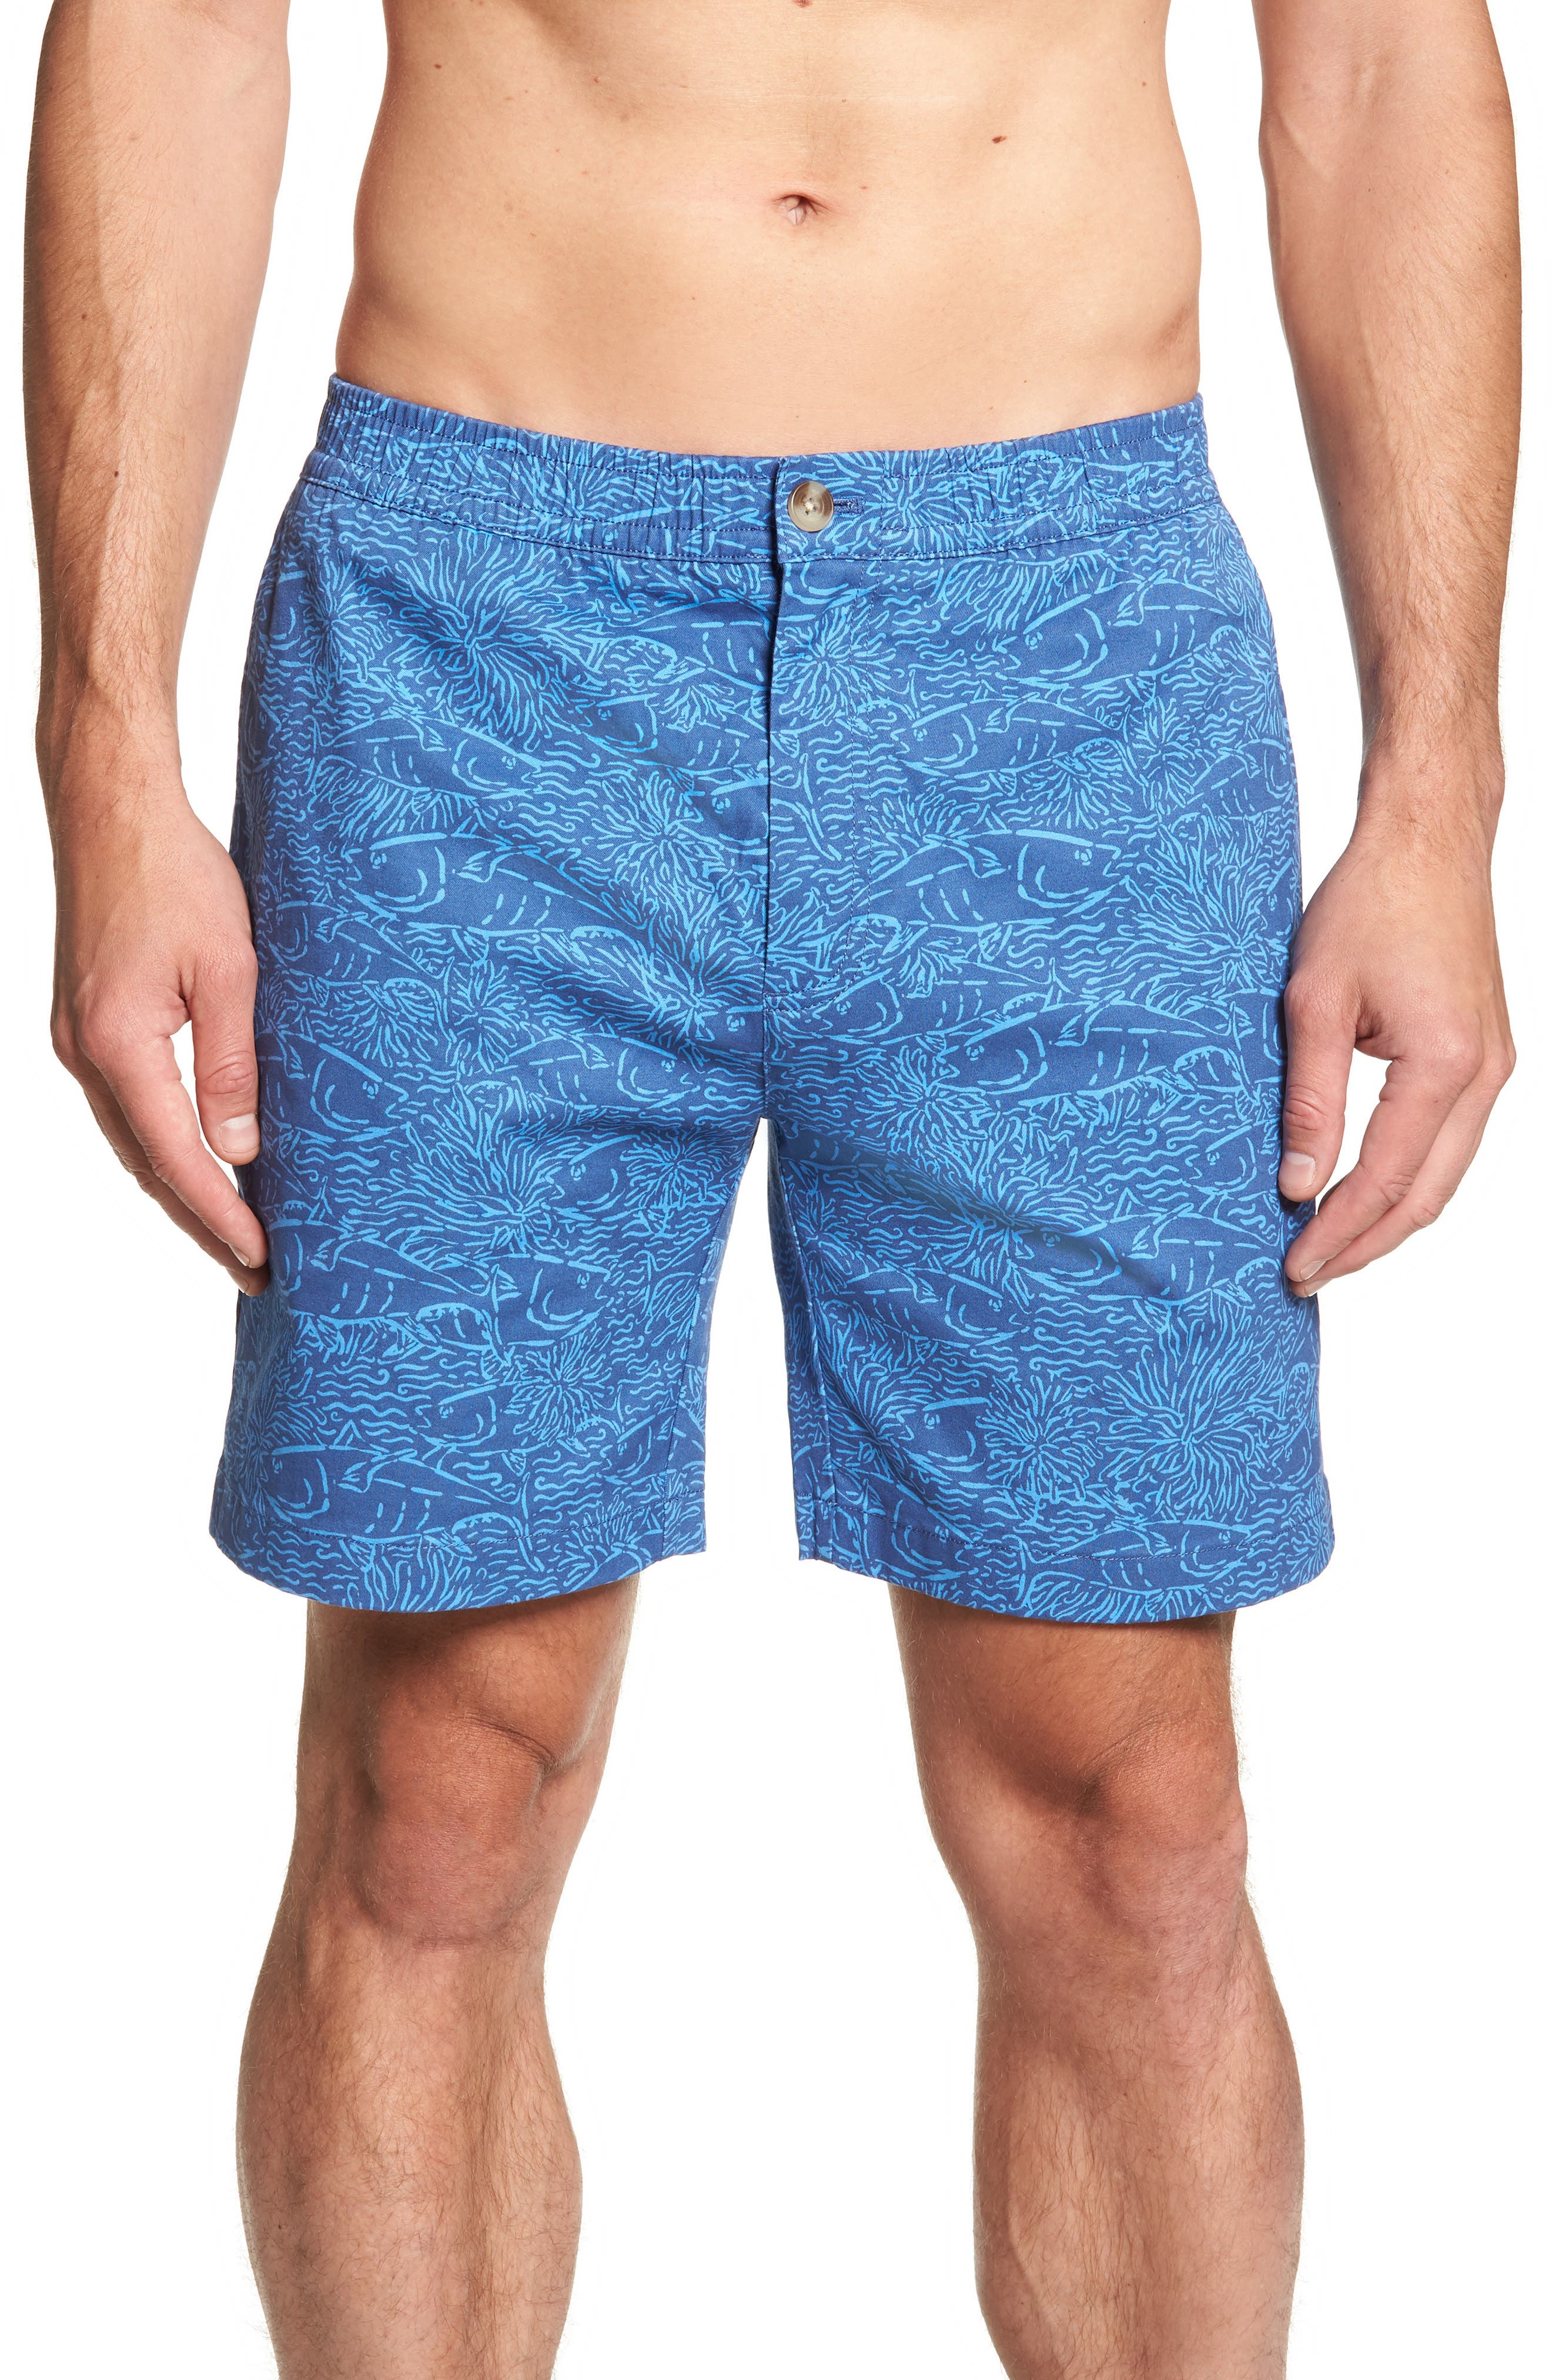 Jetty Print Stretch Cotton Shorts,                         Main,                         color, 461